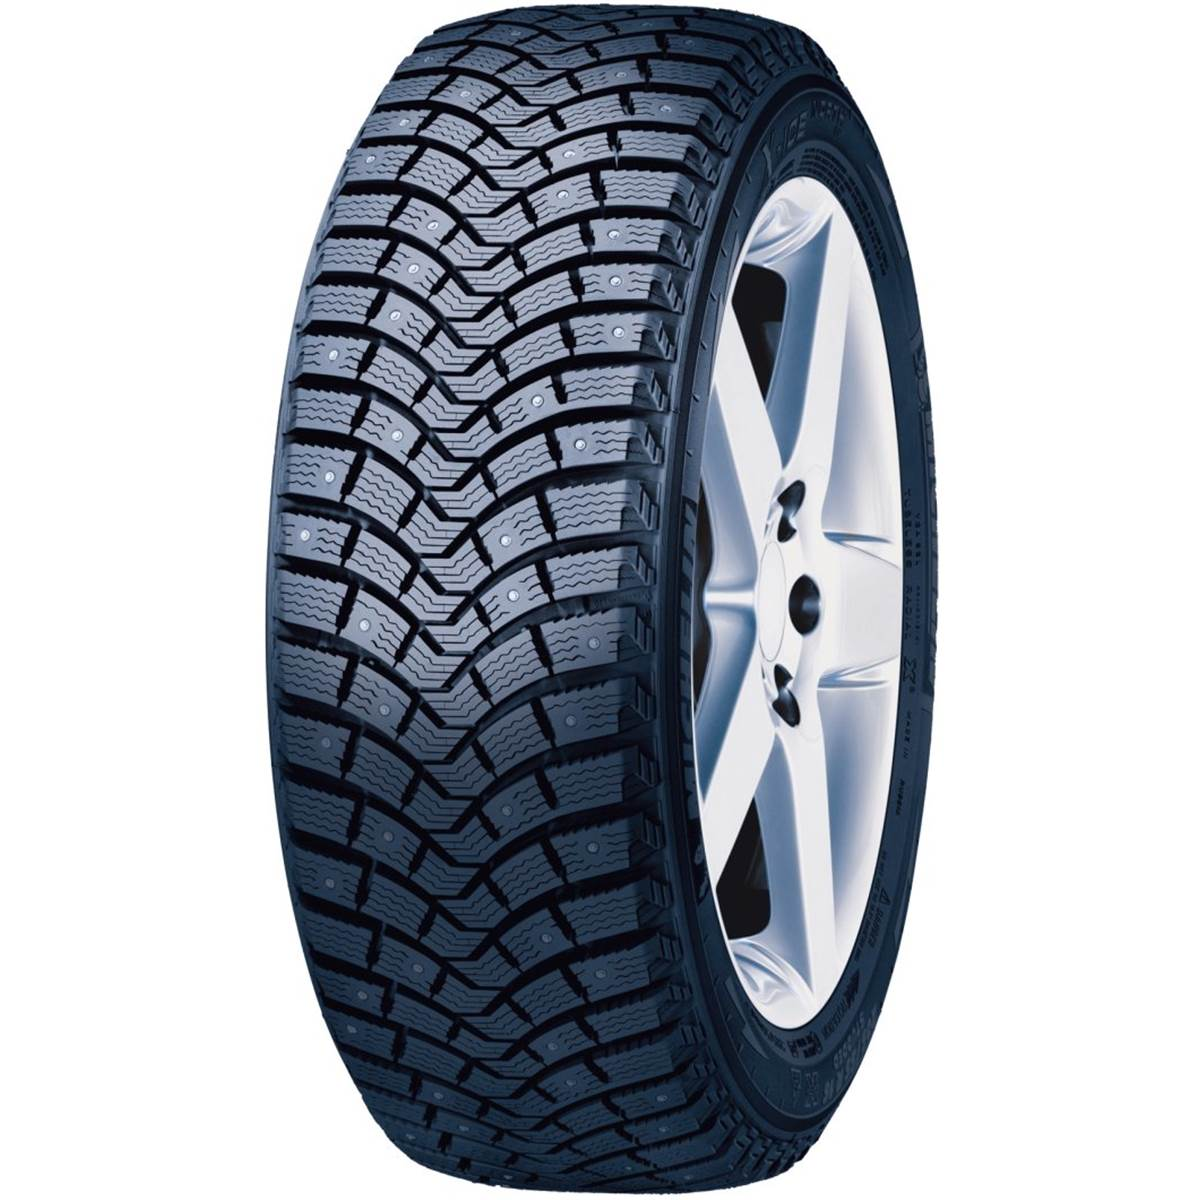 Michelin X Ice North 3 Xl Studdable Rft